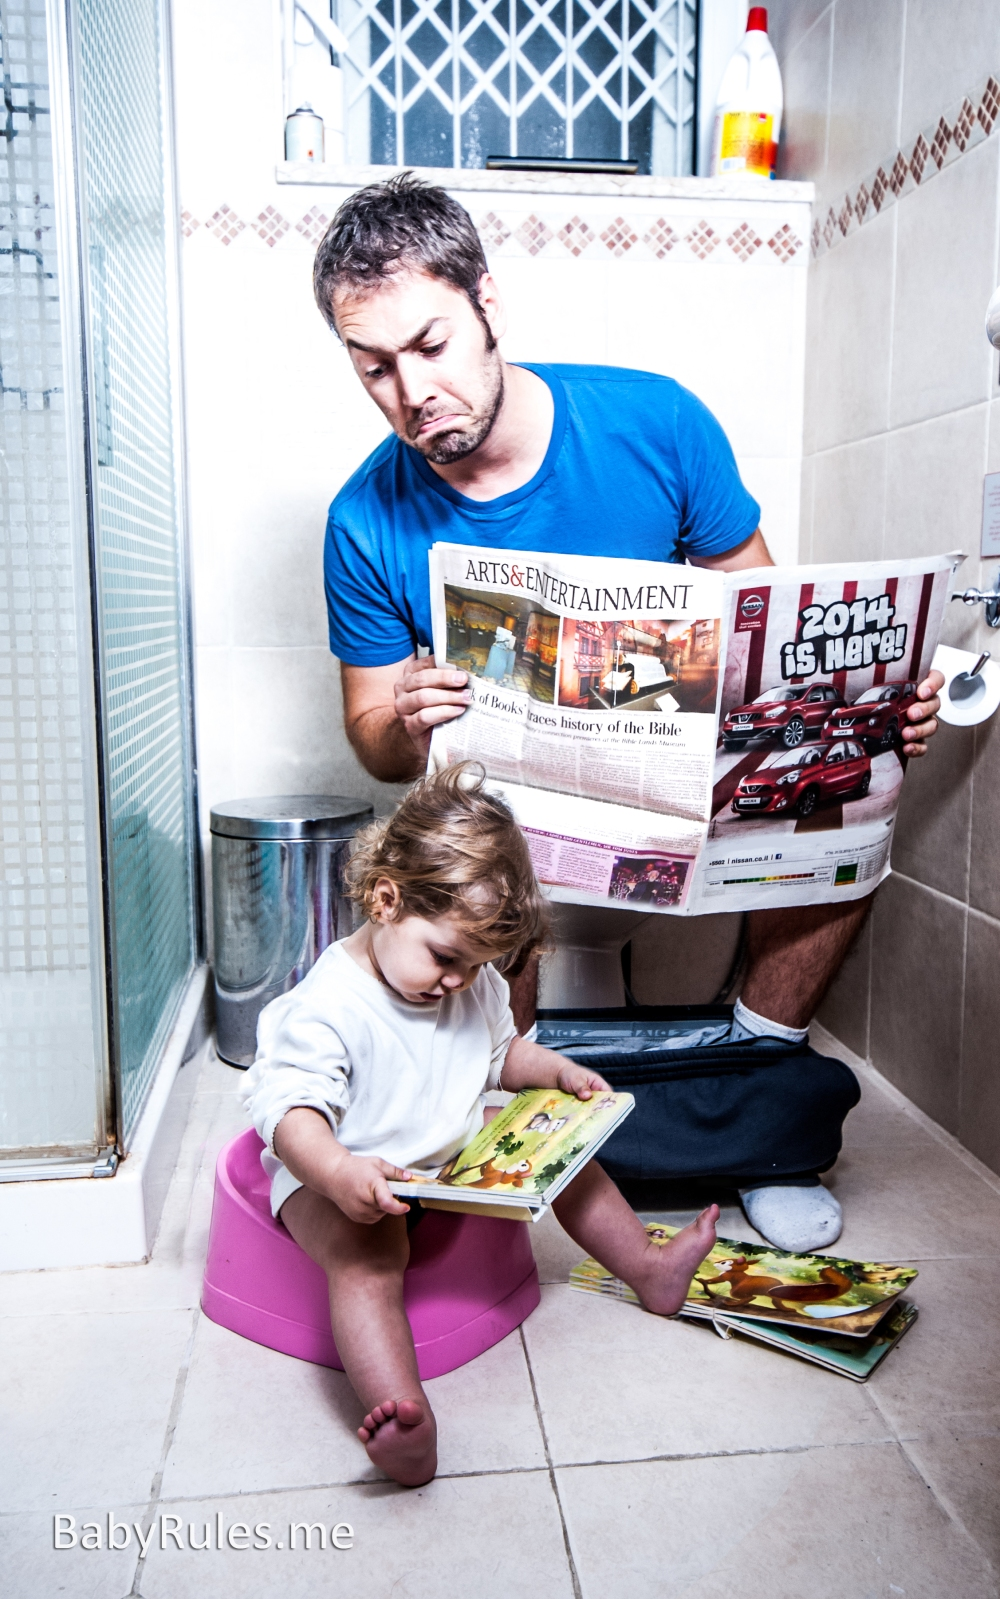 father and daughter in toilet reading newspaper